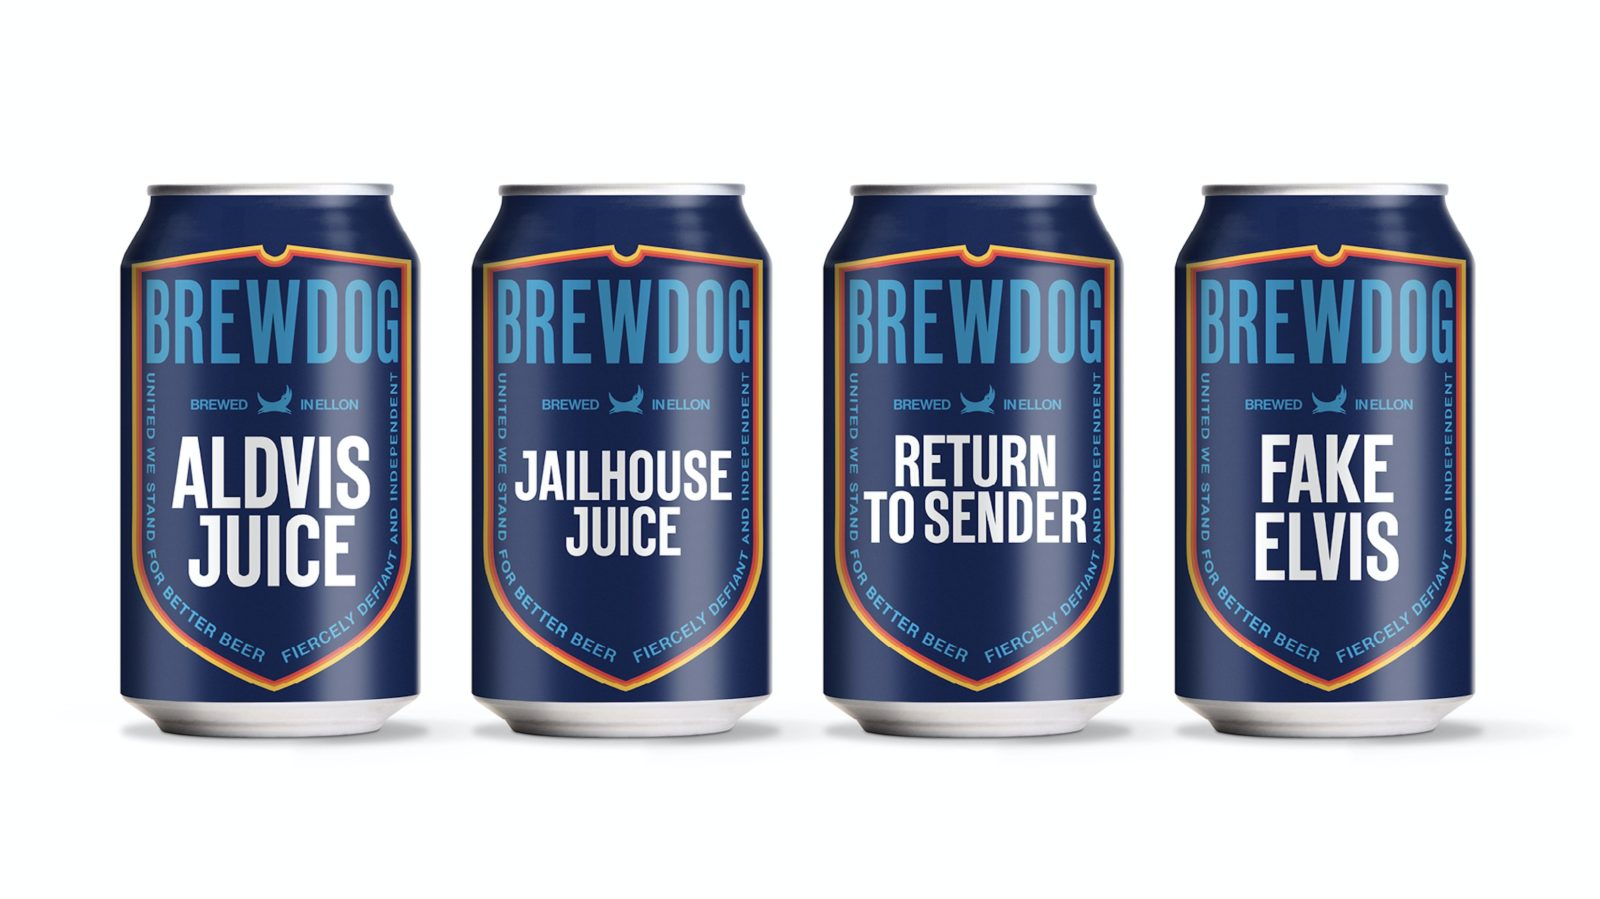 Another Aldi Inspired Brewdog Beer May Be Coming photo